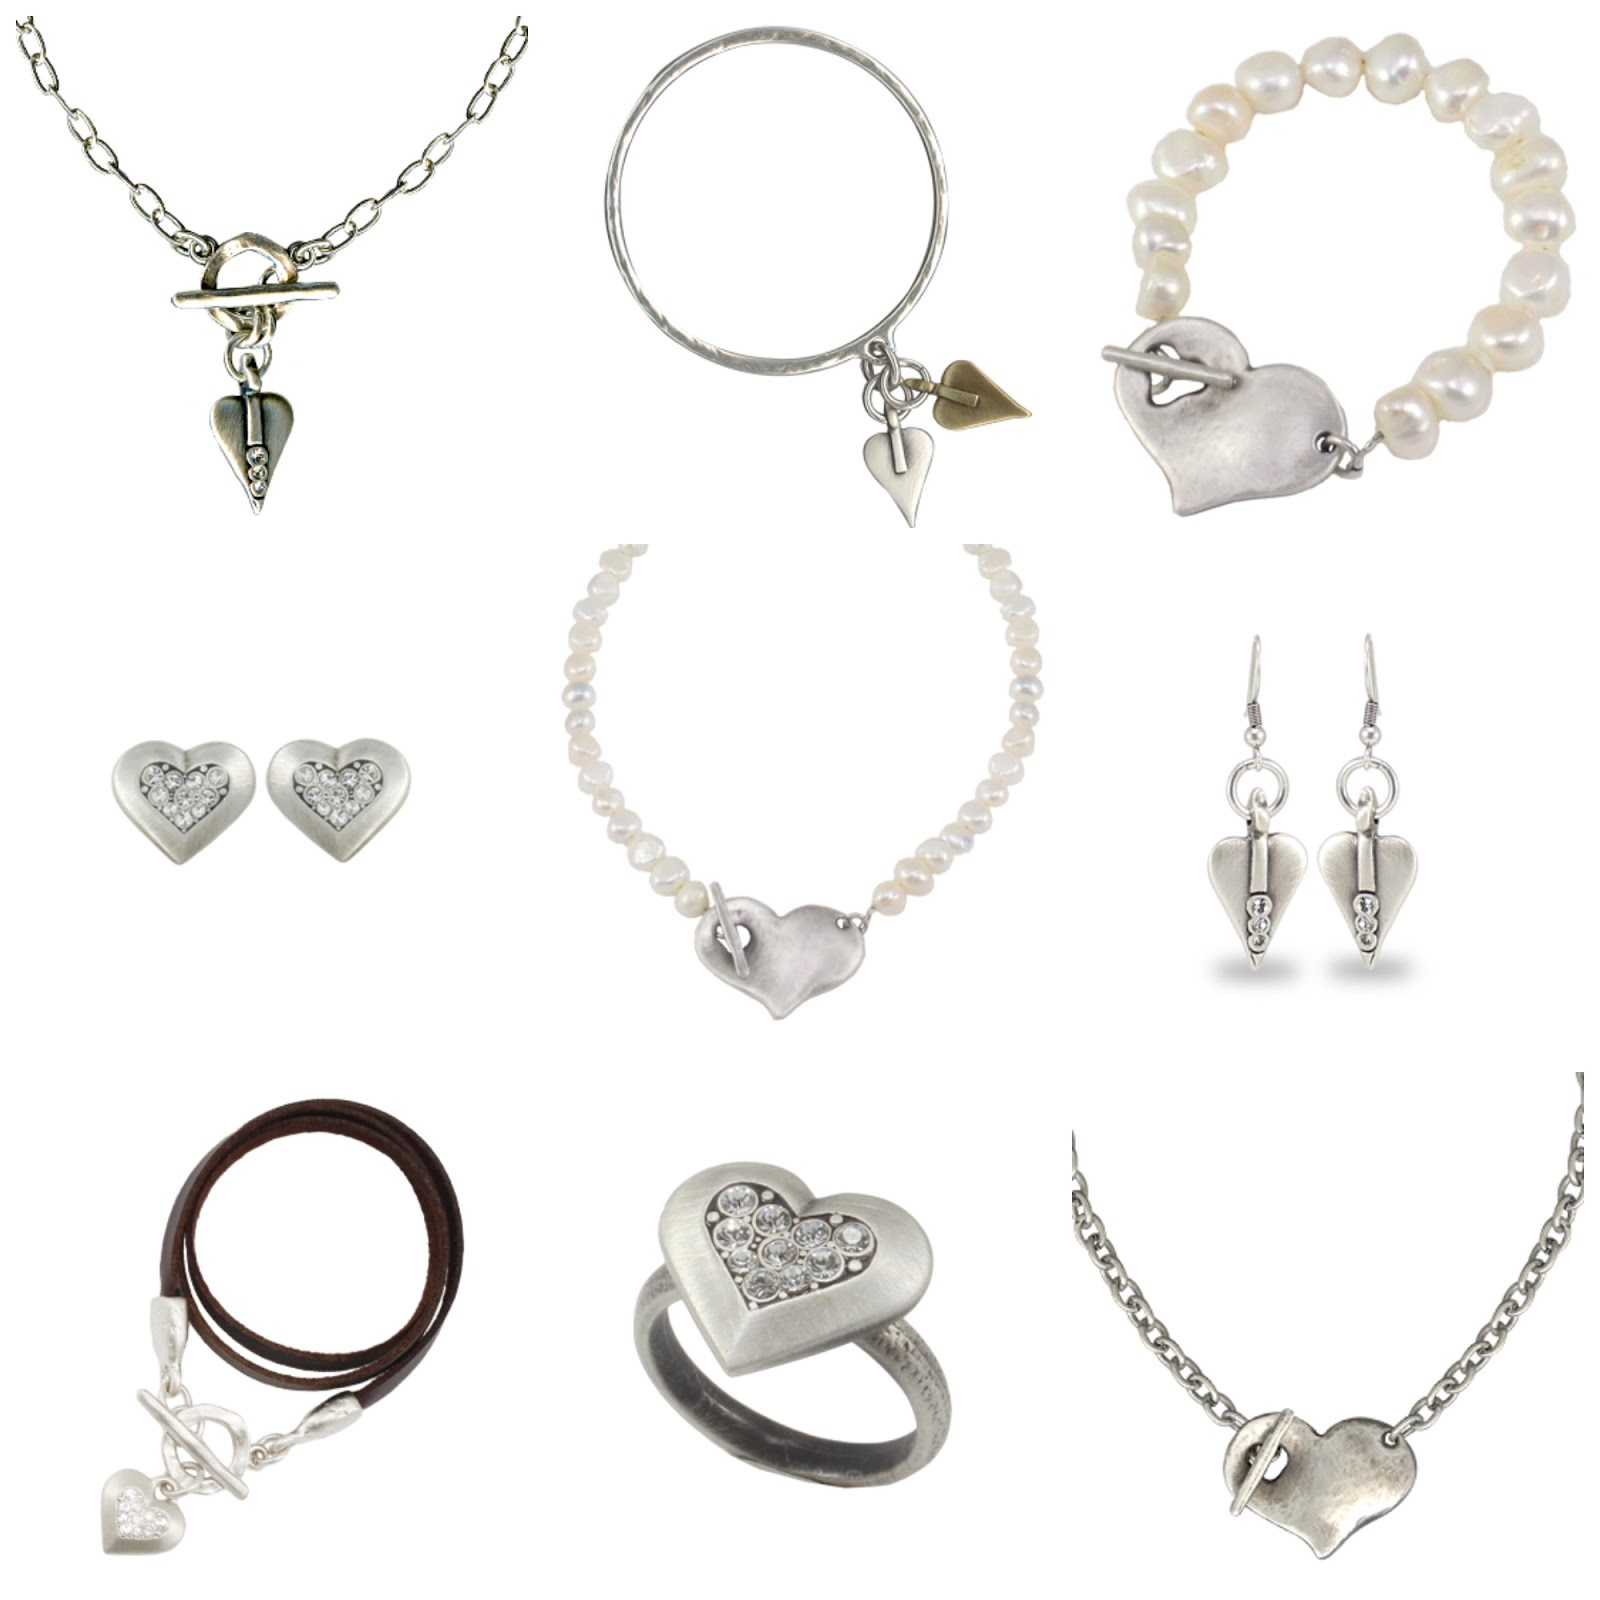 Danon heart jewellery Valentines at Lizzy O